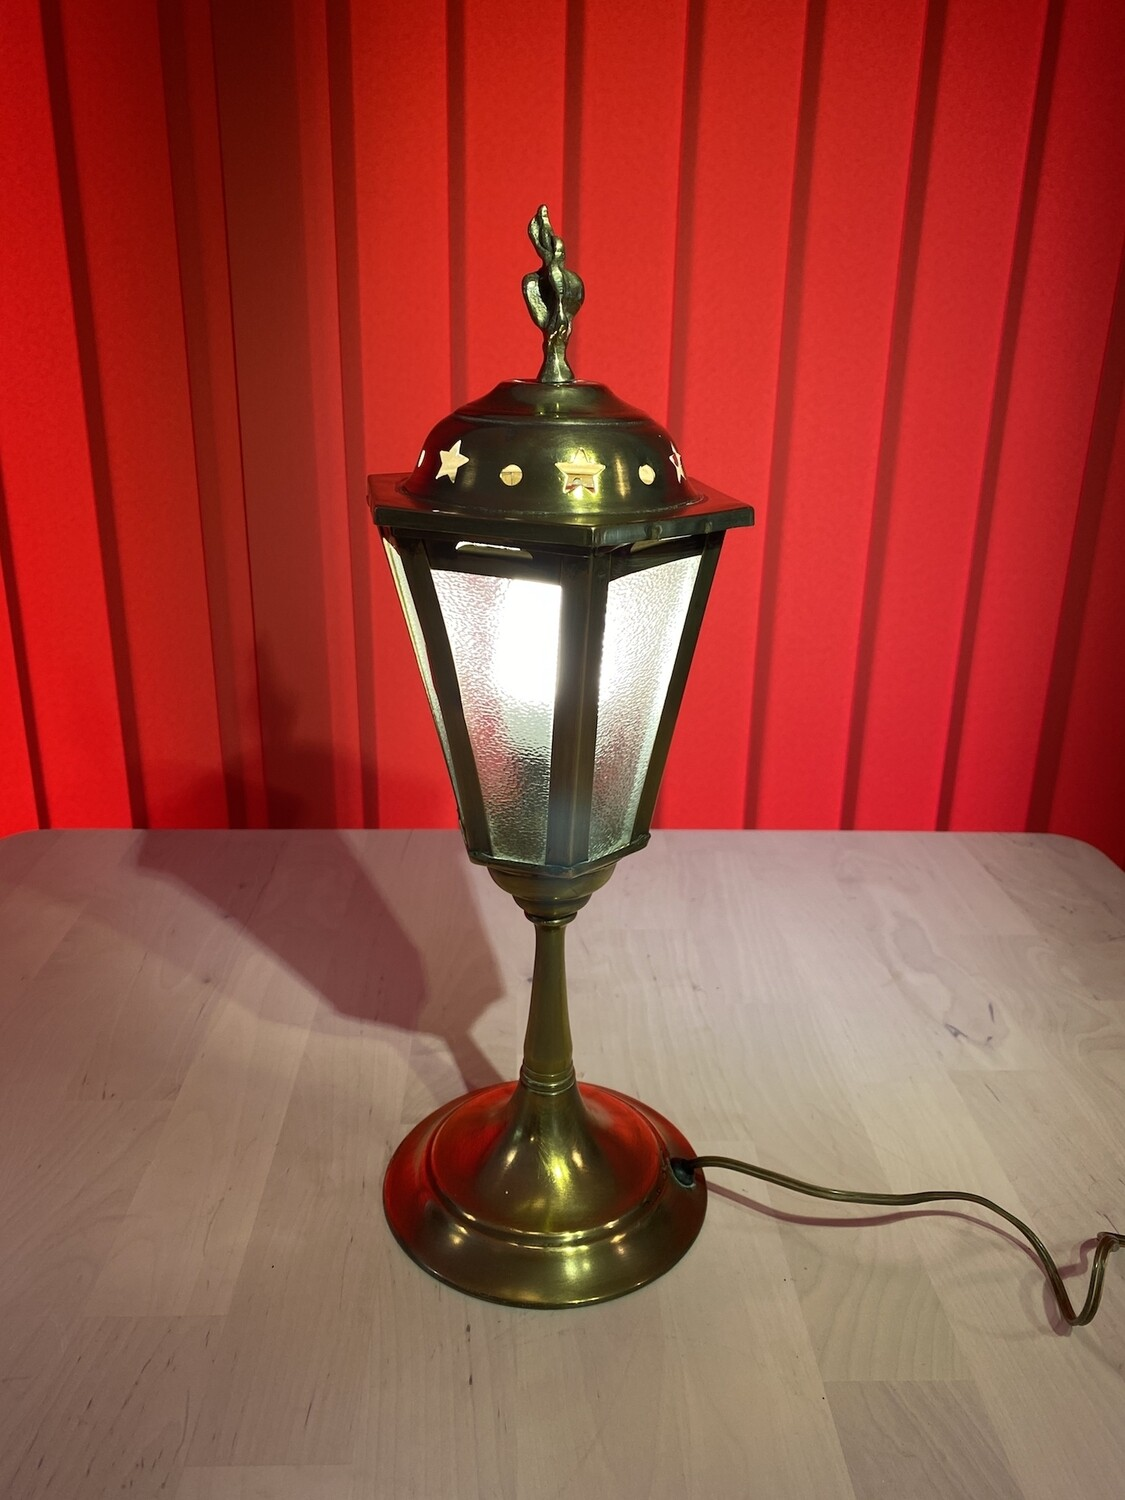 Brass Table Lamp in Style of a Victorian Streetlamp